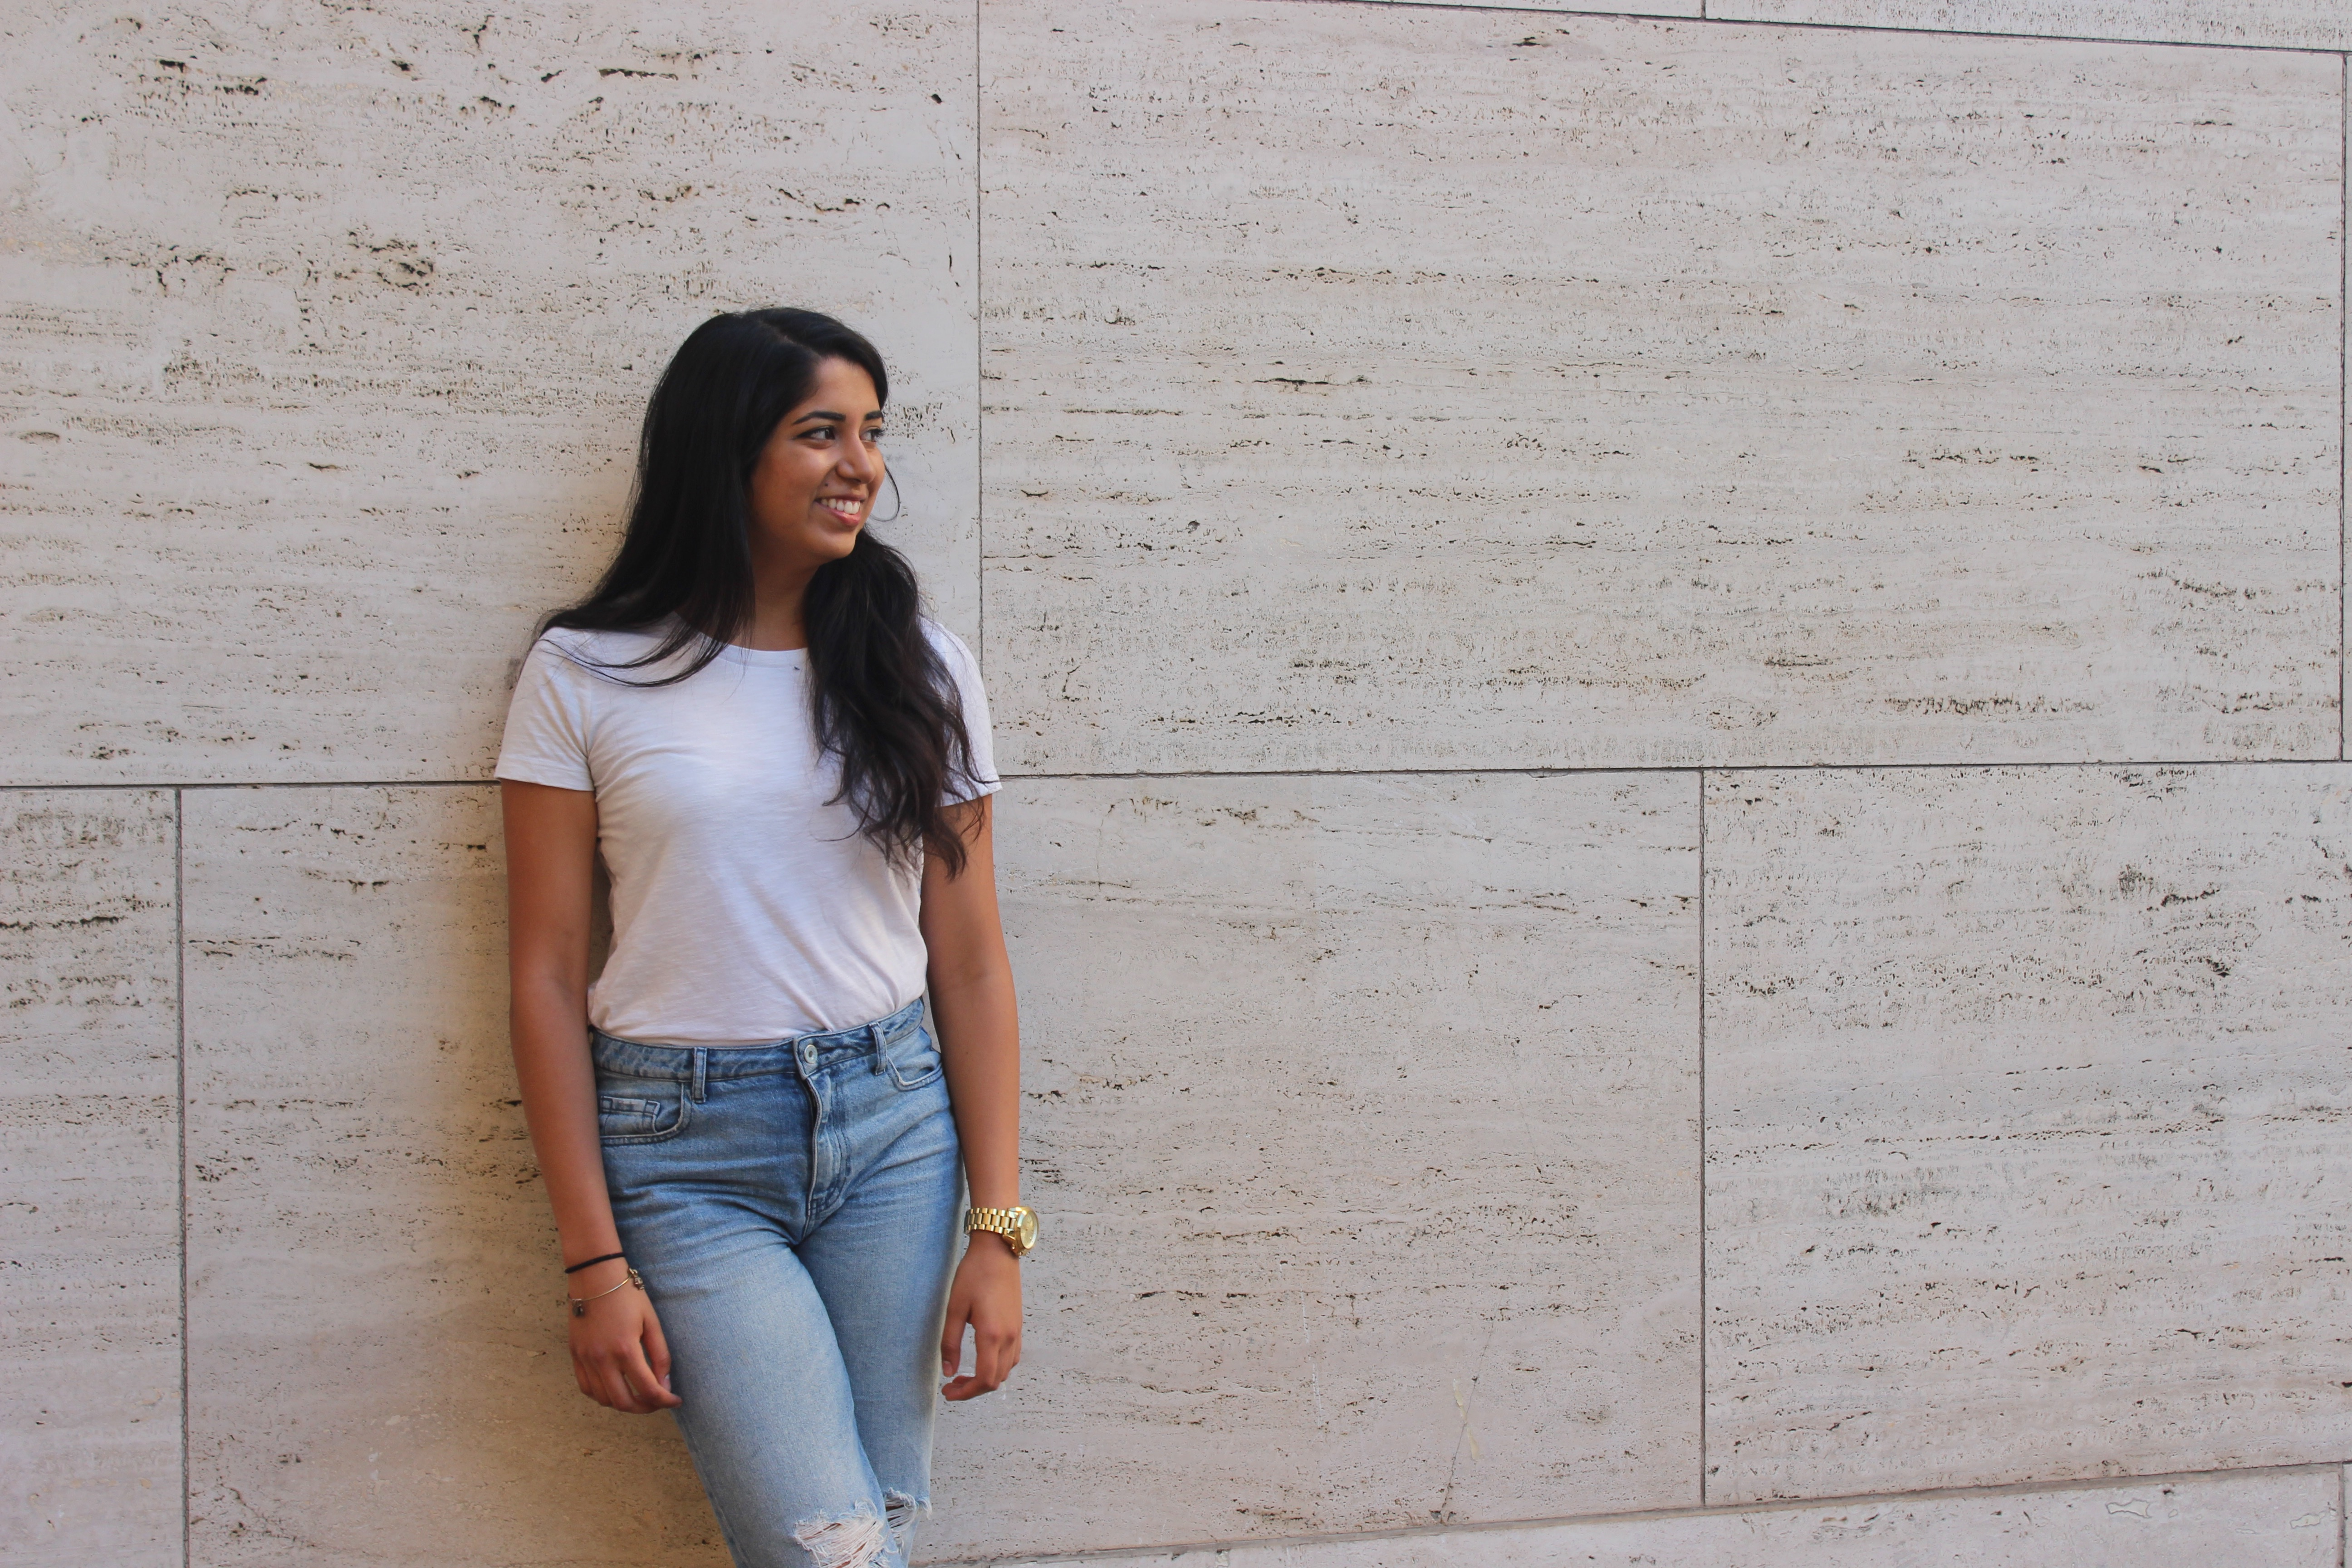 UT Student Unnati Shukla Is Changing the Way We View Beauty